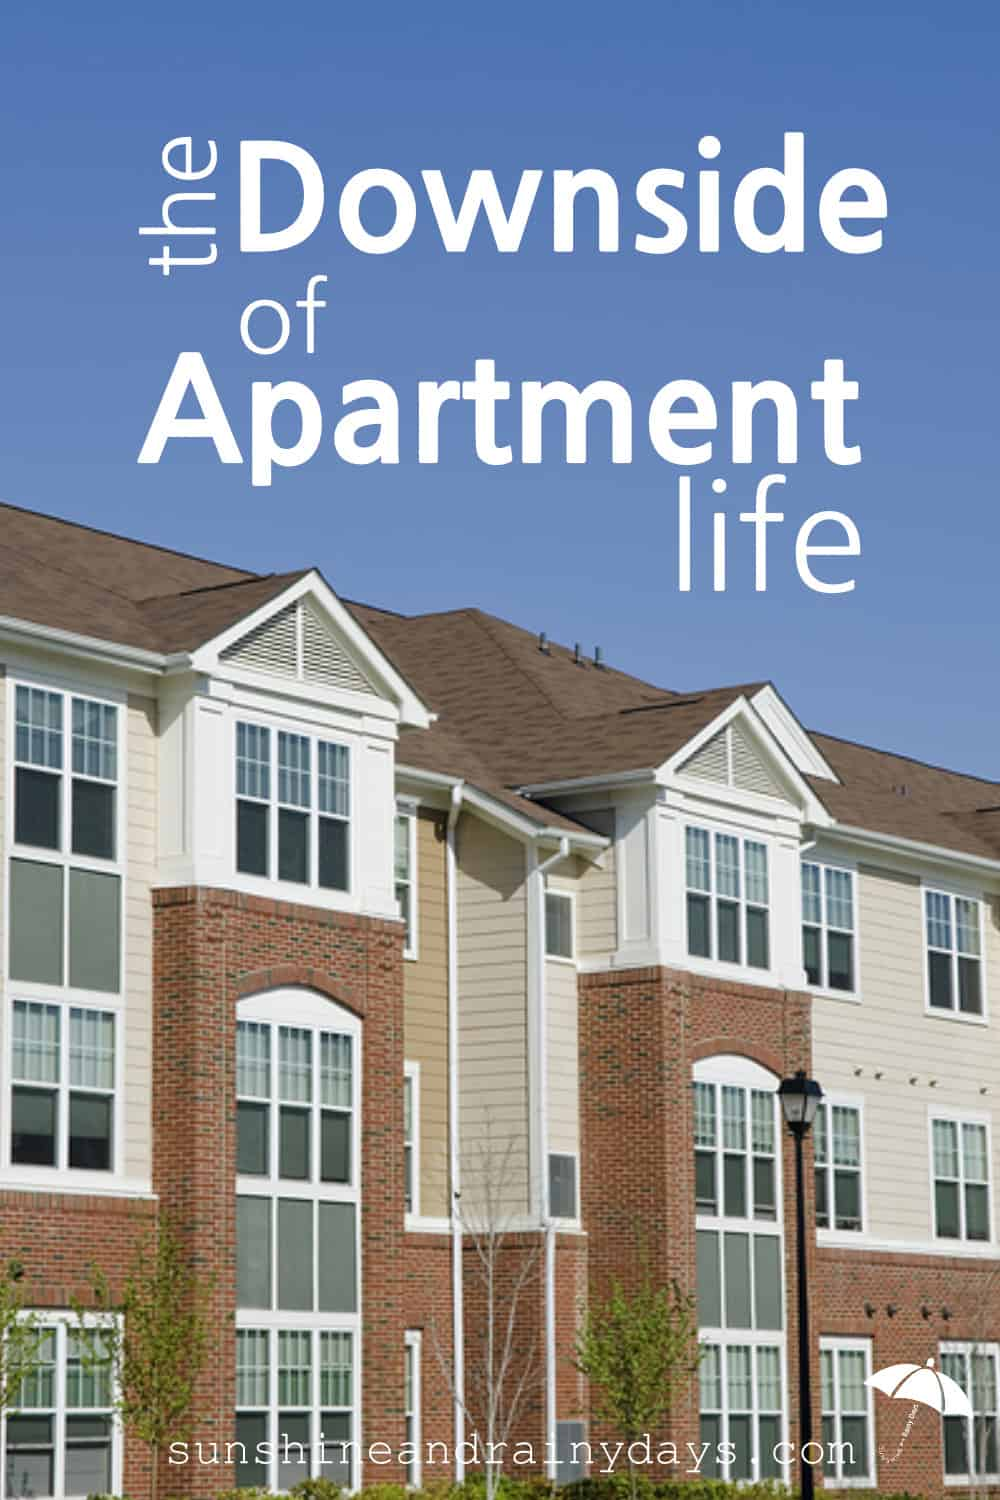 The Downside Of Apartment Life is easy to find. From noise, to parking, and making your own stinking ice, the negatives can overwhelm you. If you are considering apartment life, THIS is the REAL DEAL!